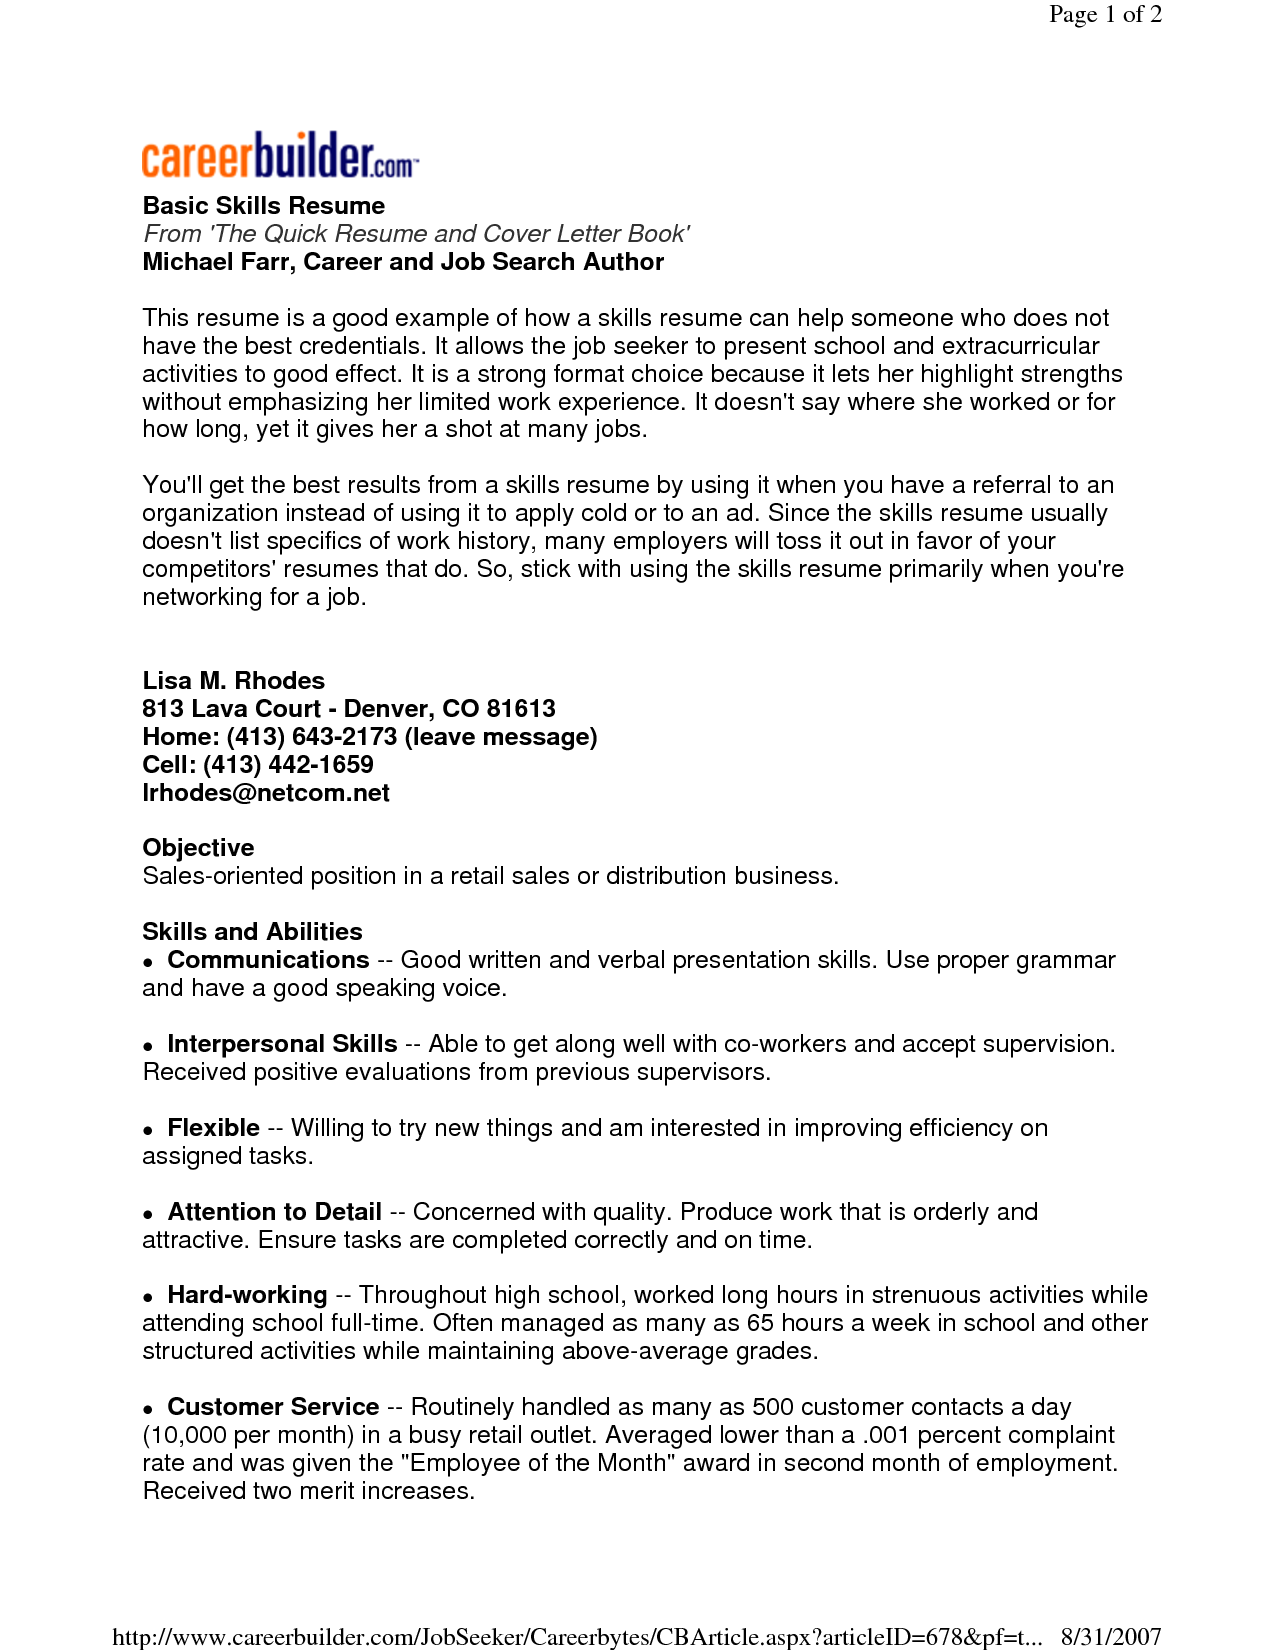 Examples Of Skills For Resume Magnificent Basic Resume Examples Skills  Httpwww.resumecareerbasic .